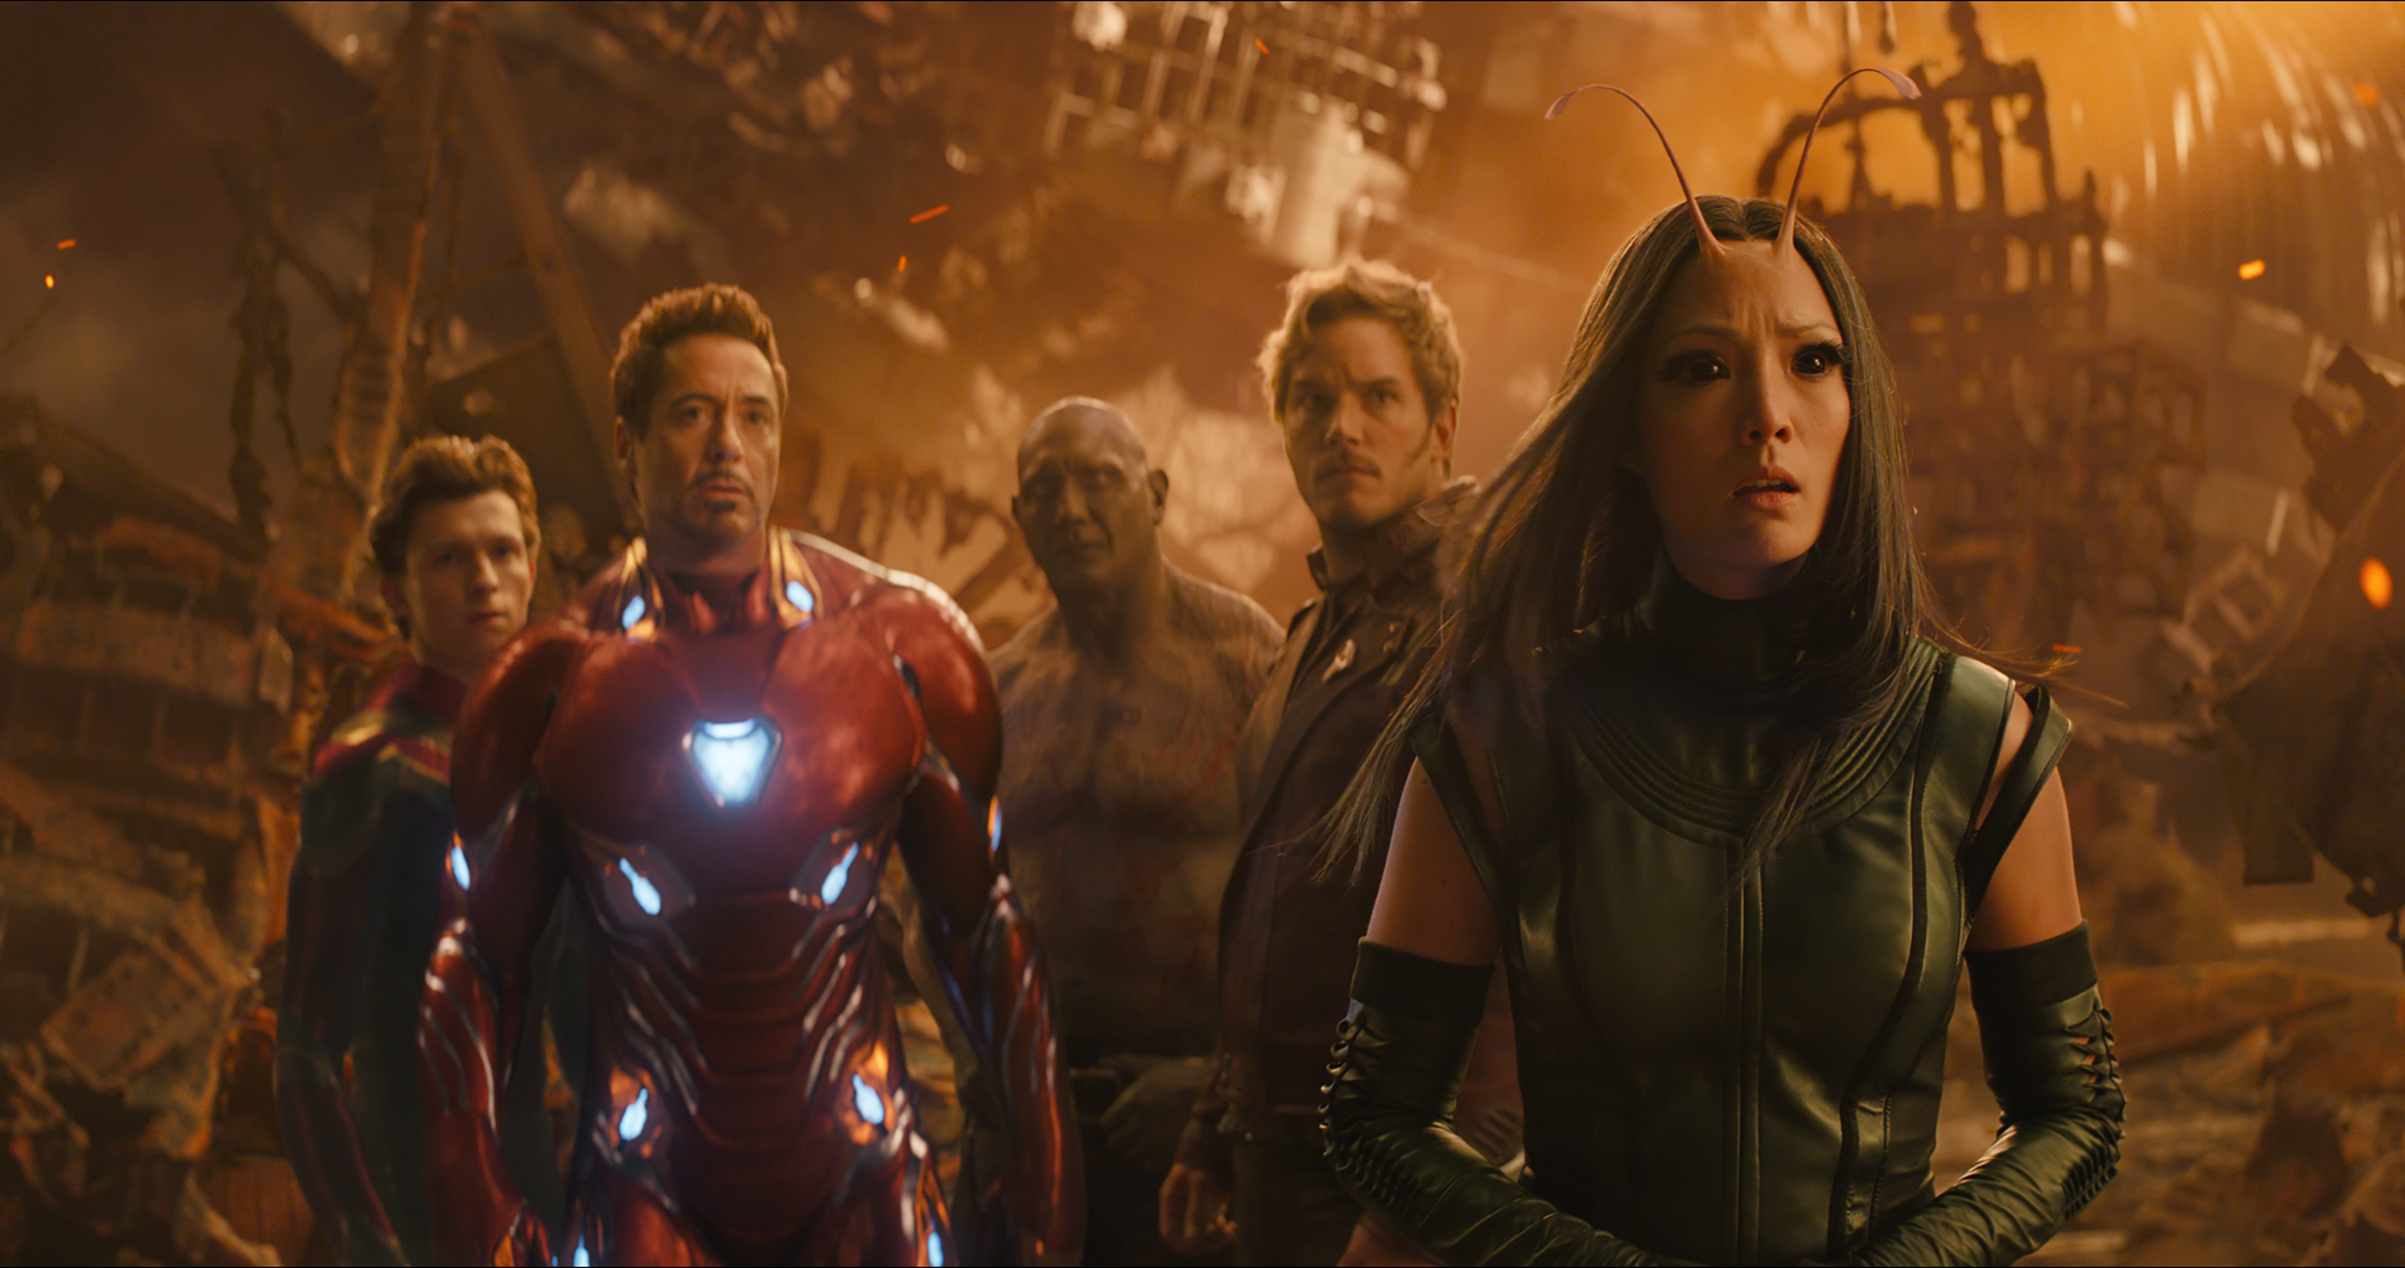 Left to Right: Spider-Man/Peter Parker (Tom Holland), Iron Man/Tony Stark (Robert Downey Jr.), Drax (Dave Bautista), Star-Lord/Peter Quill (Chris Pratt) and Mantis (Pom Klementieff) in Avengers: Infinity War